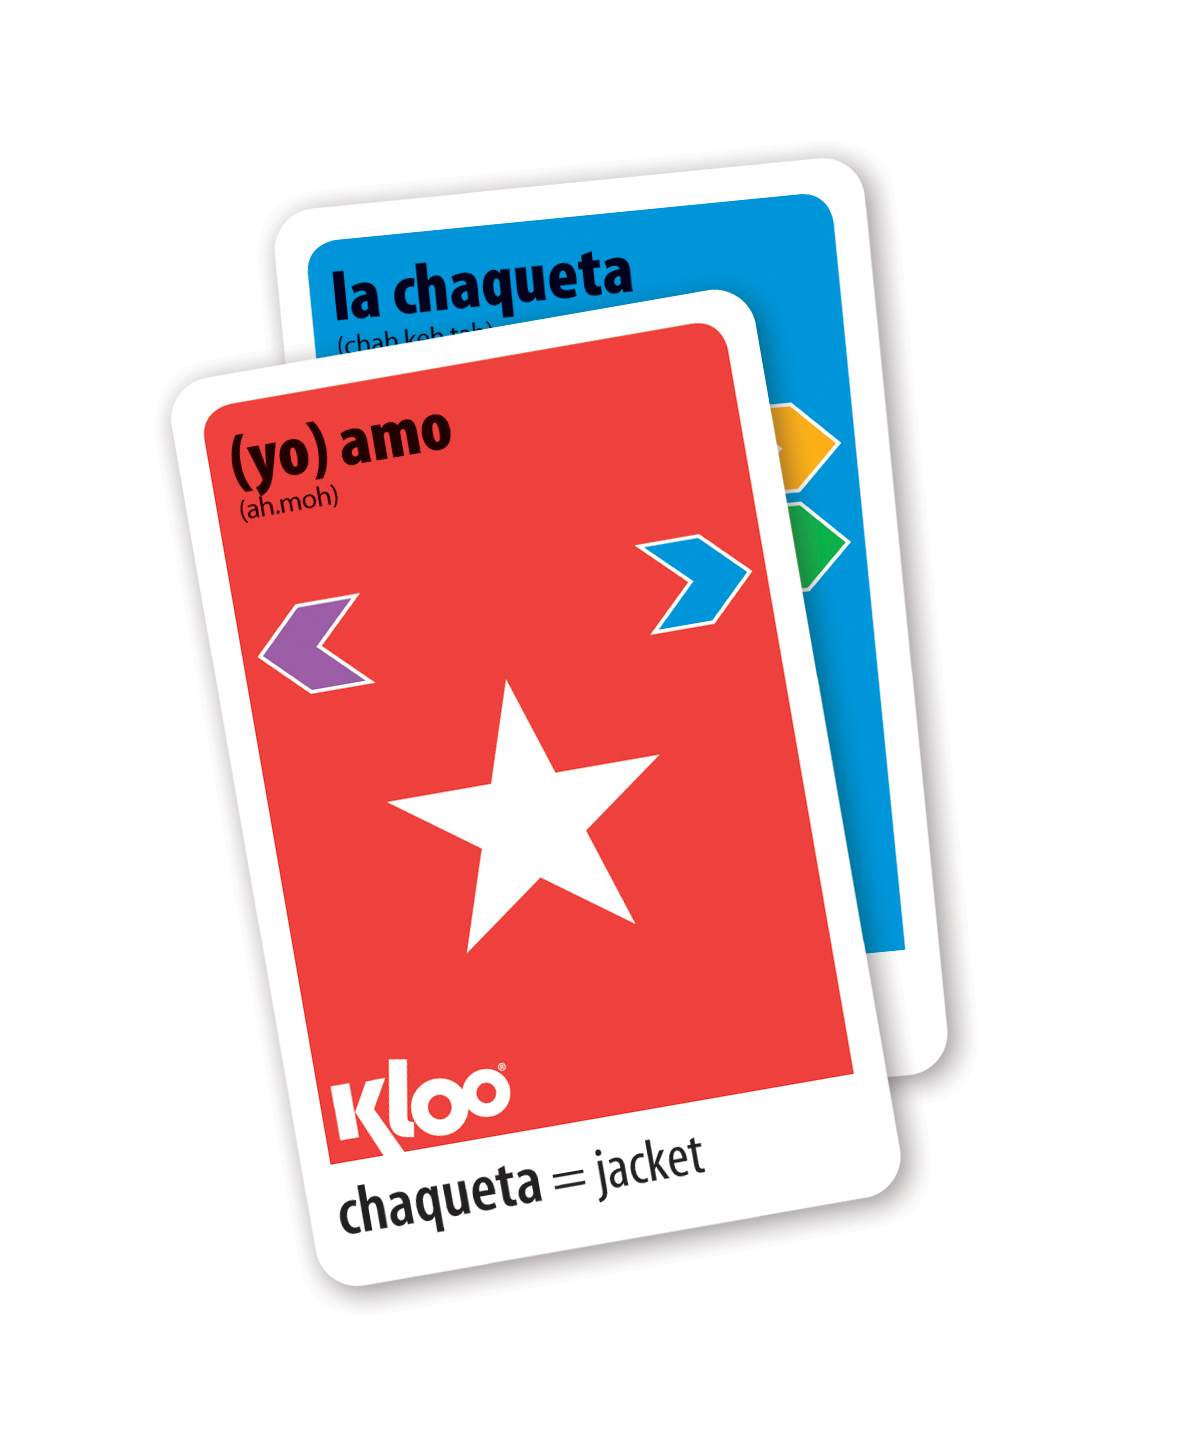 Learn Spanish words with KLOO MFL games